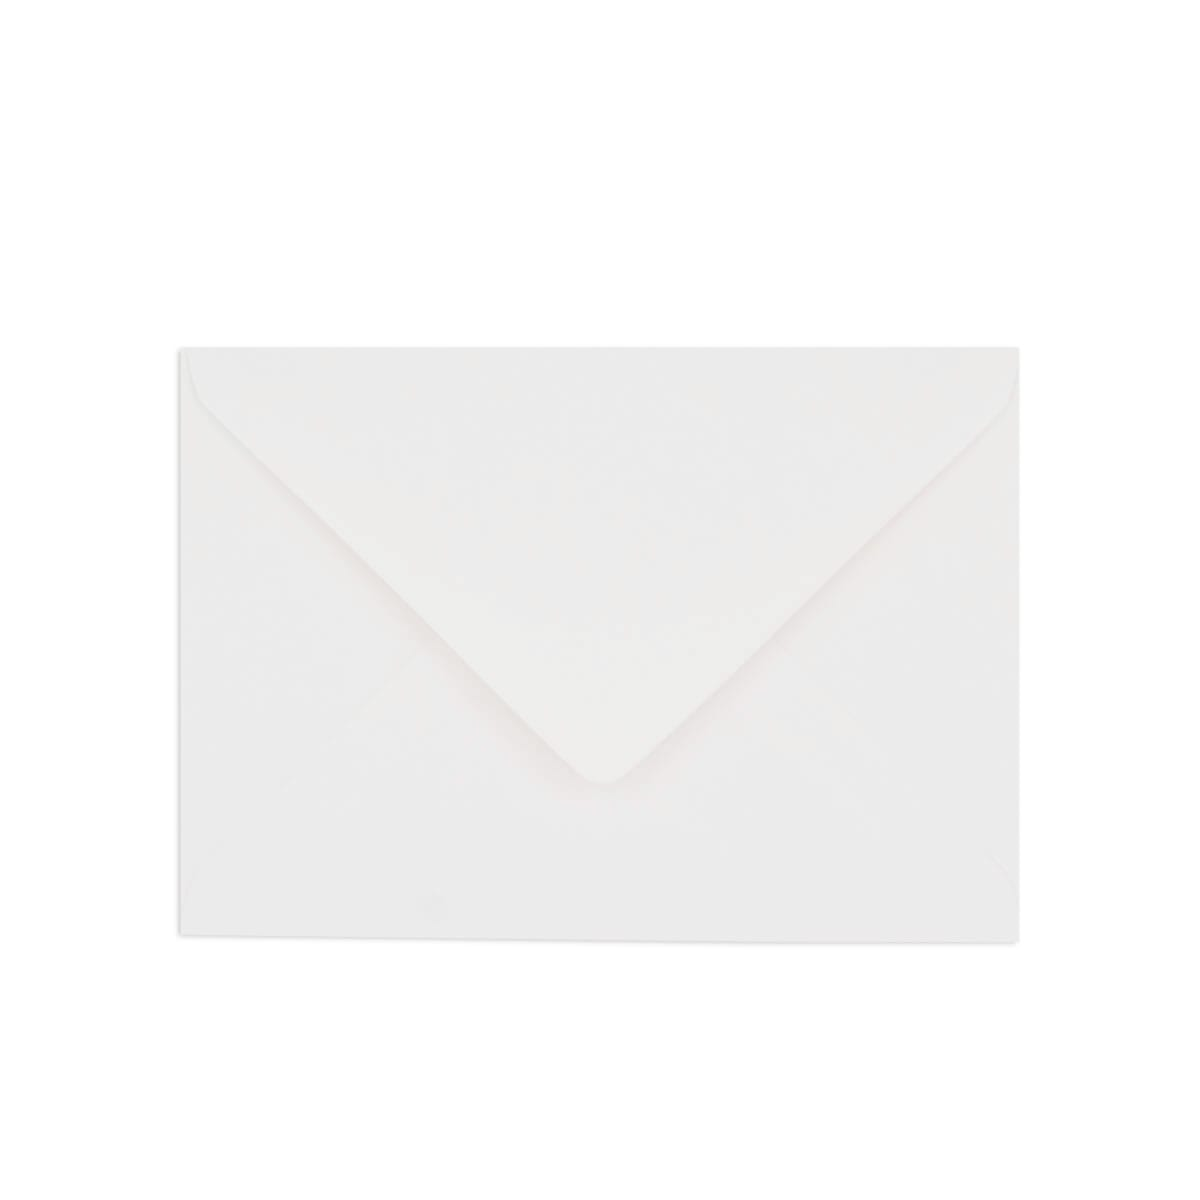 C6 CALLISTO DIAMOND WHITE 135GSM ENVELOPES